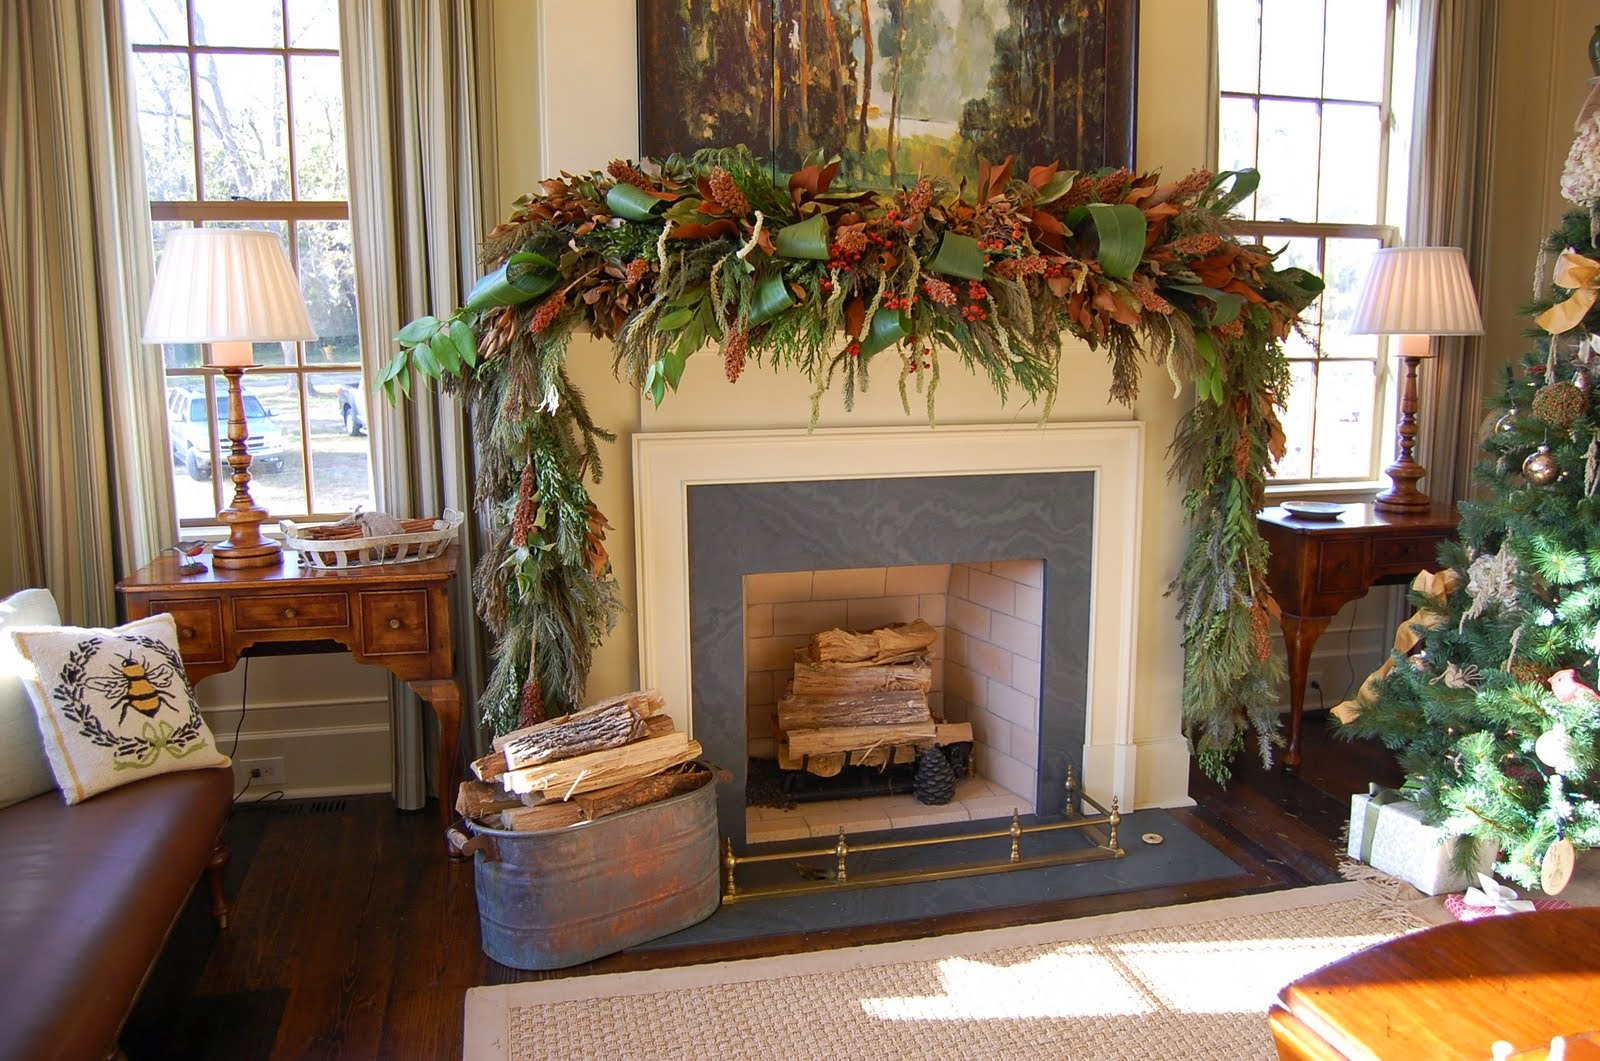 Lantzyruns Interior Design Home Traditional Fireplace Mantel Decorating Ideas With Brick Accent And Some Classic Candles On The Top